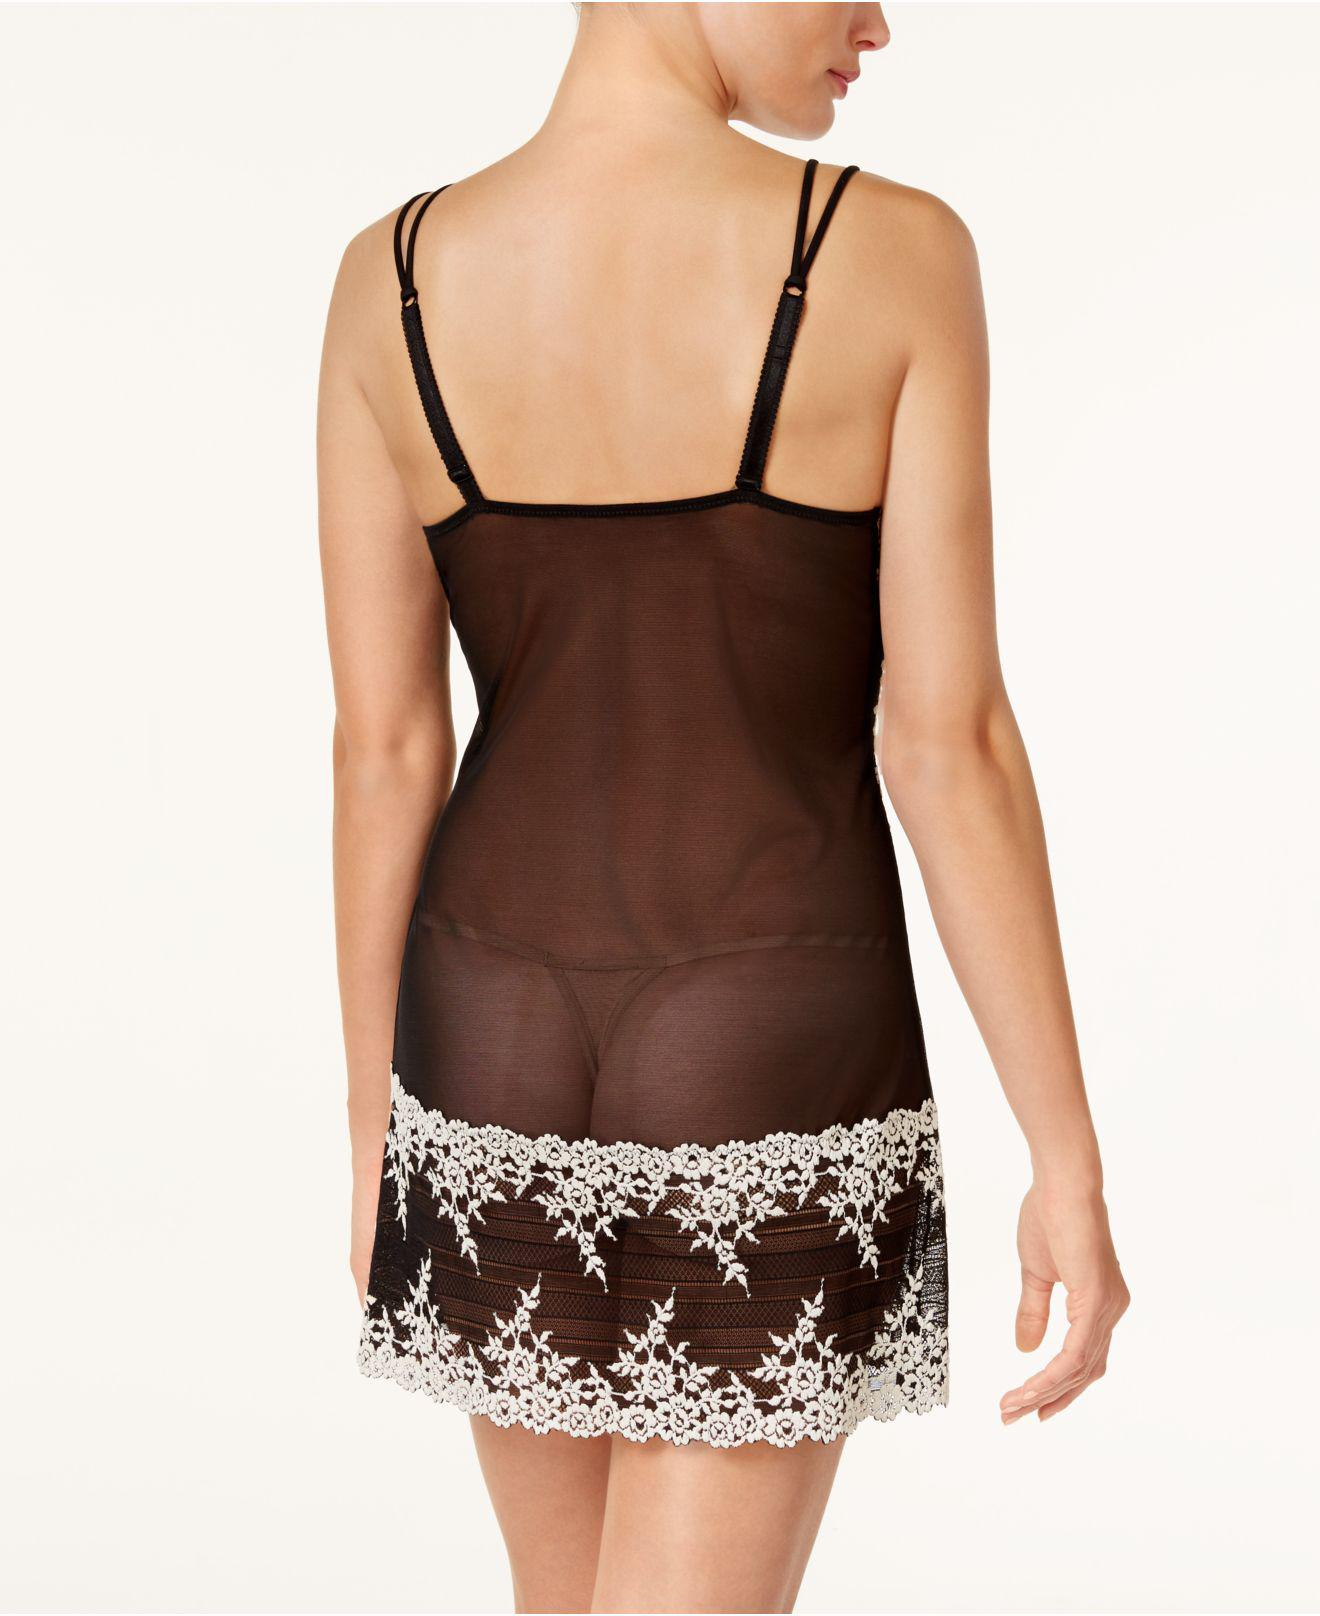 28b9b7ac3 Wacoal Embrace Lace Chemise 814191 in Black - Save 52% - Lyst